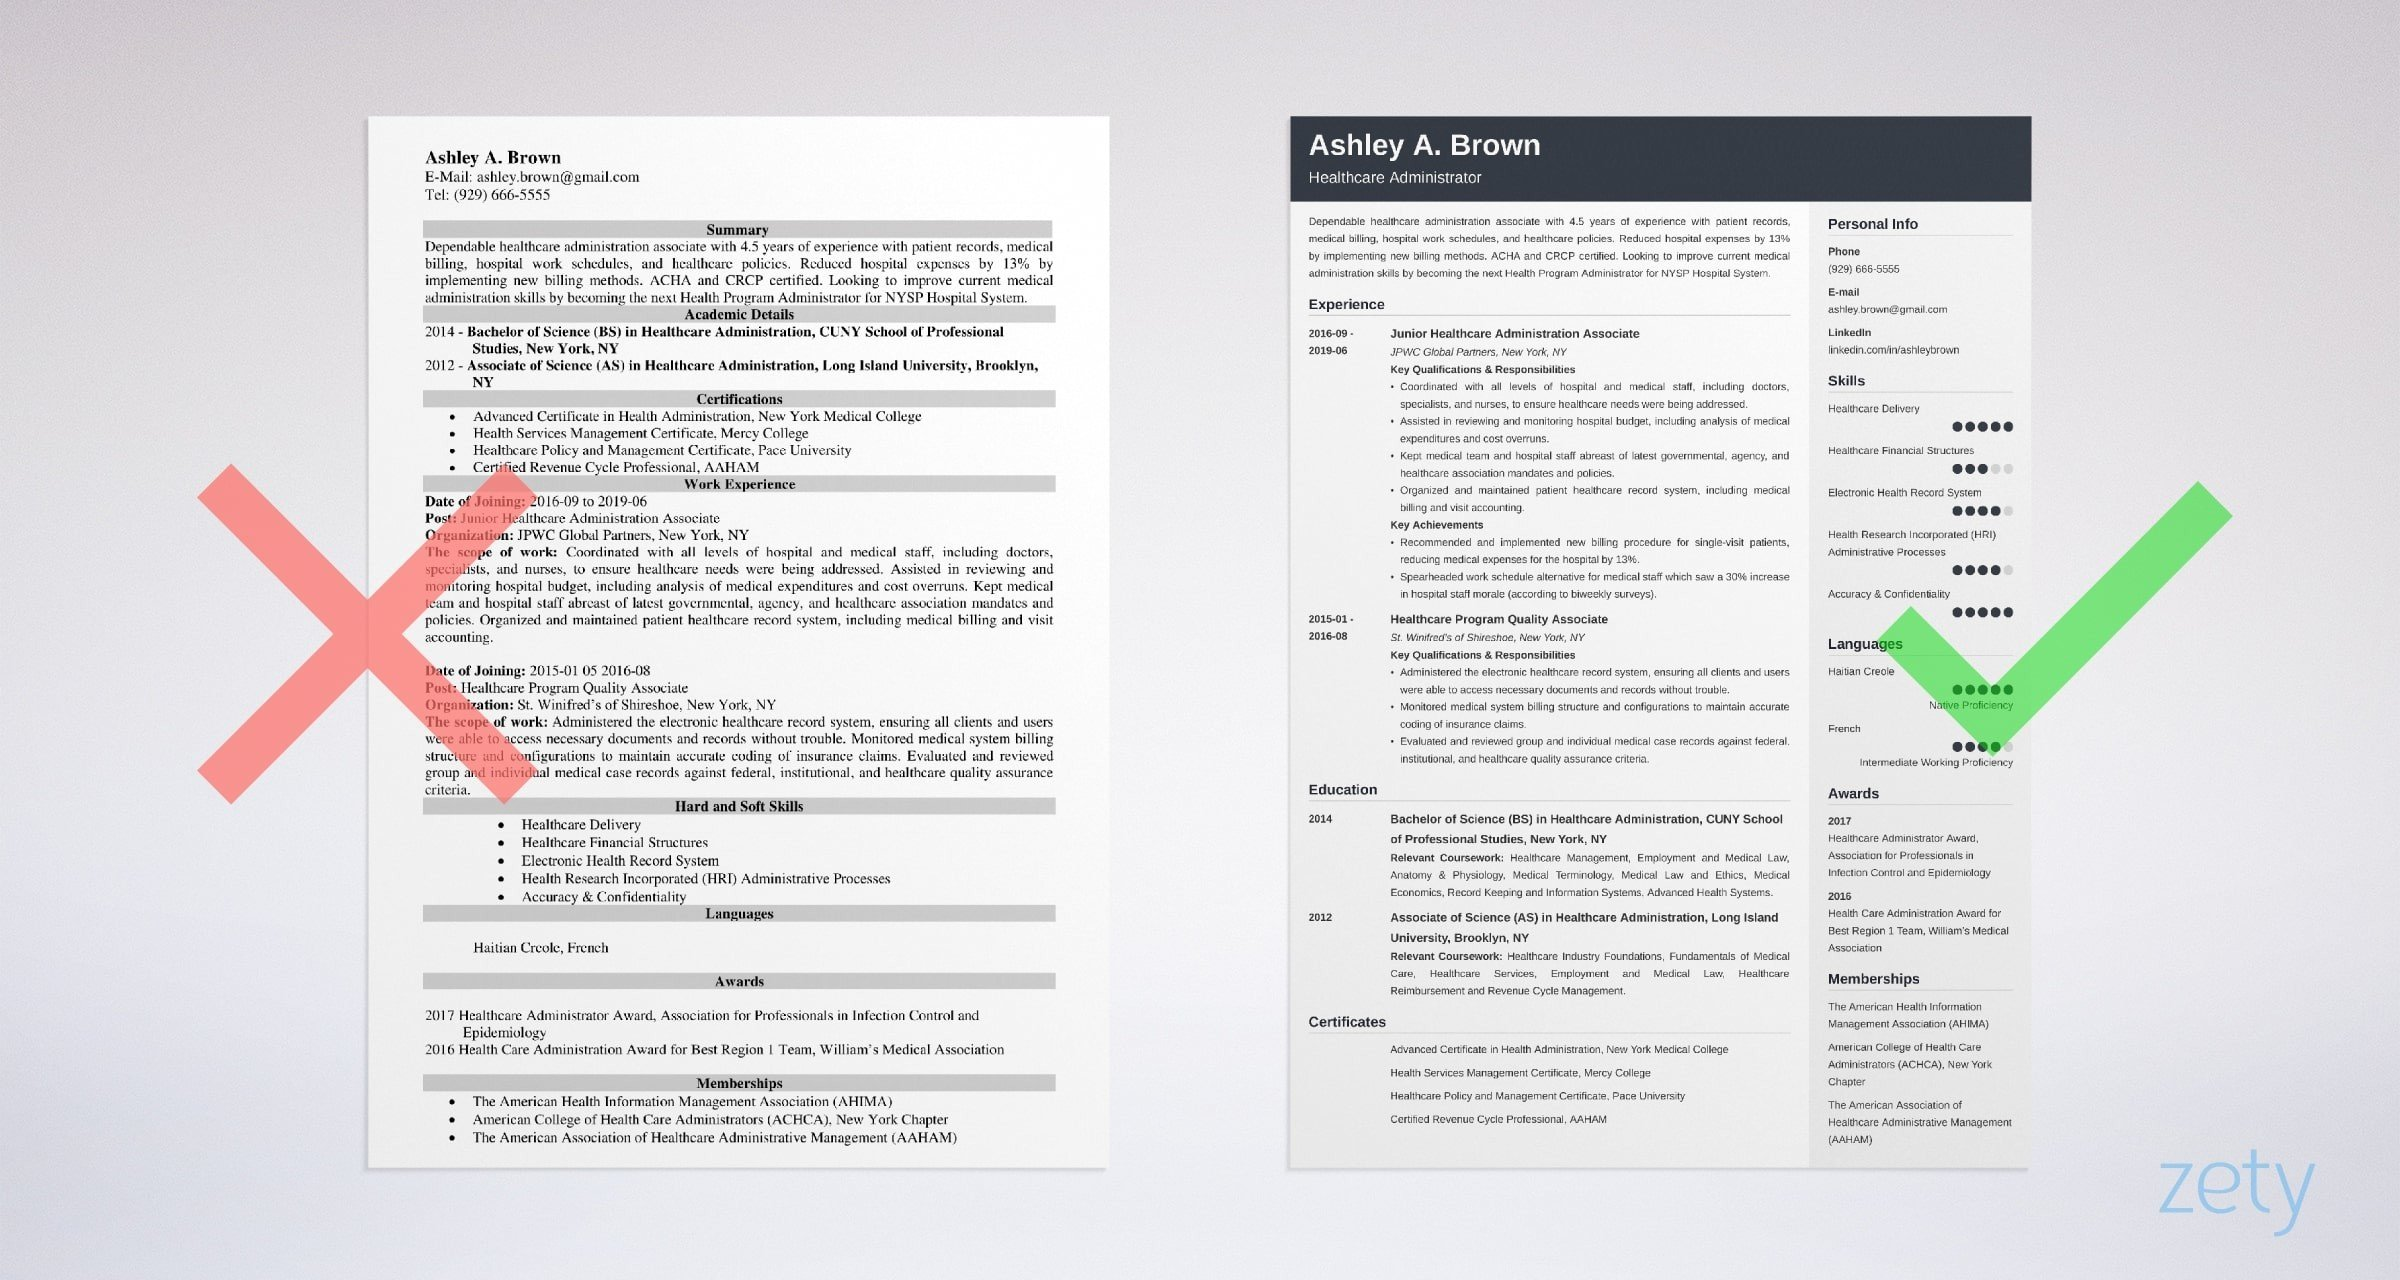 healthcare professional resume samples writing tips keywords for example software test Resume Keywords For Healthcare Resume